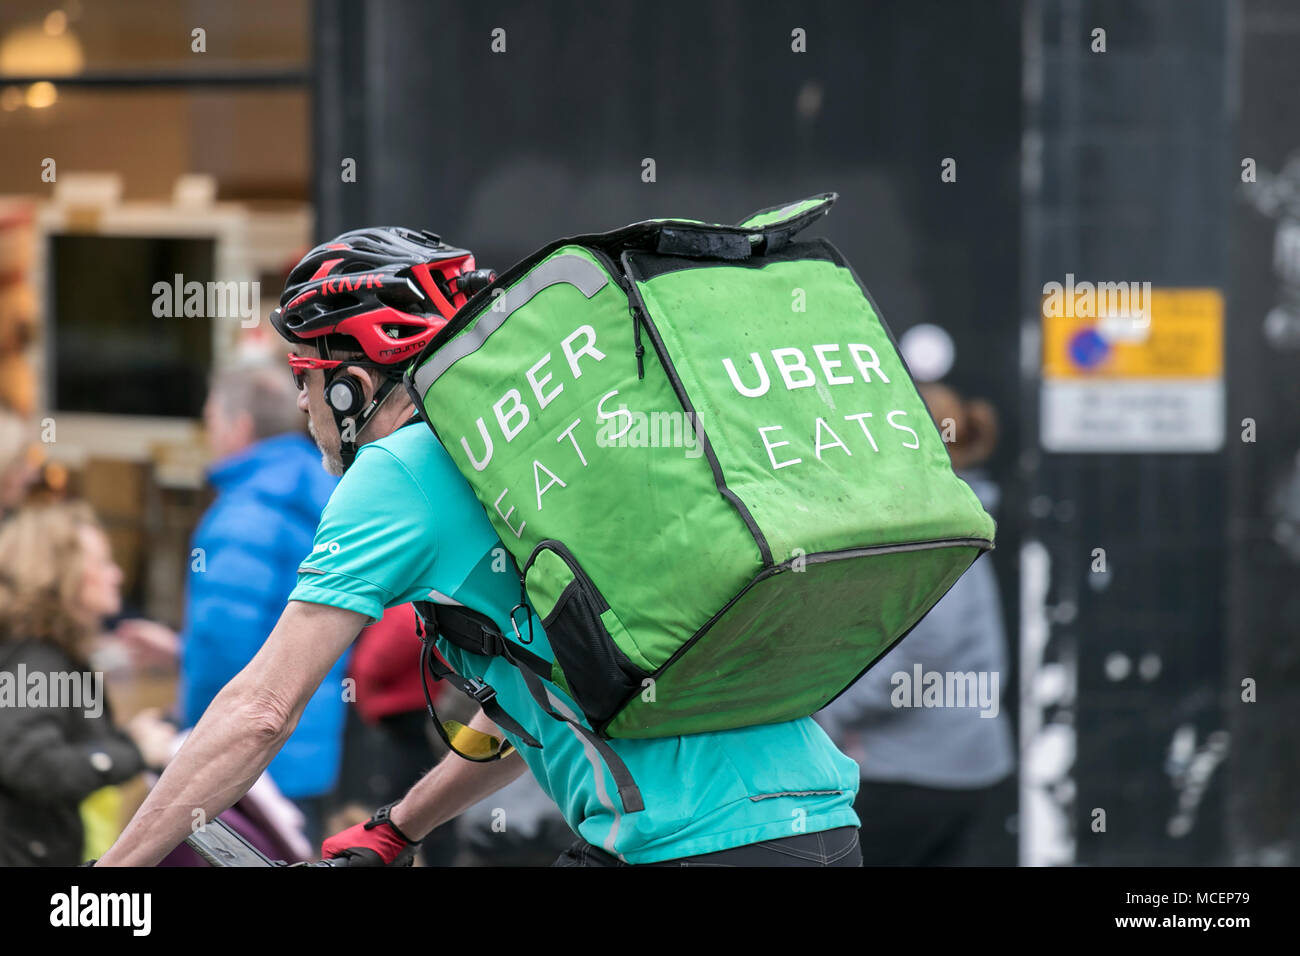 uber eats delivery boy salary in india